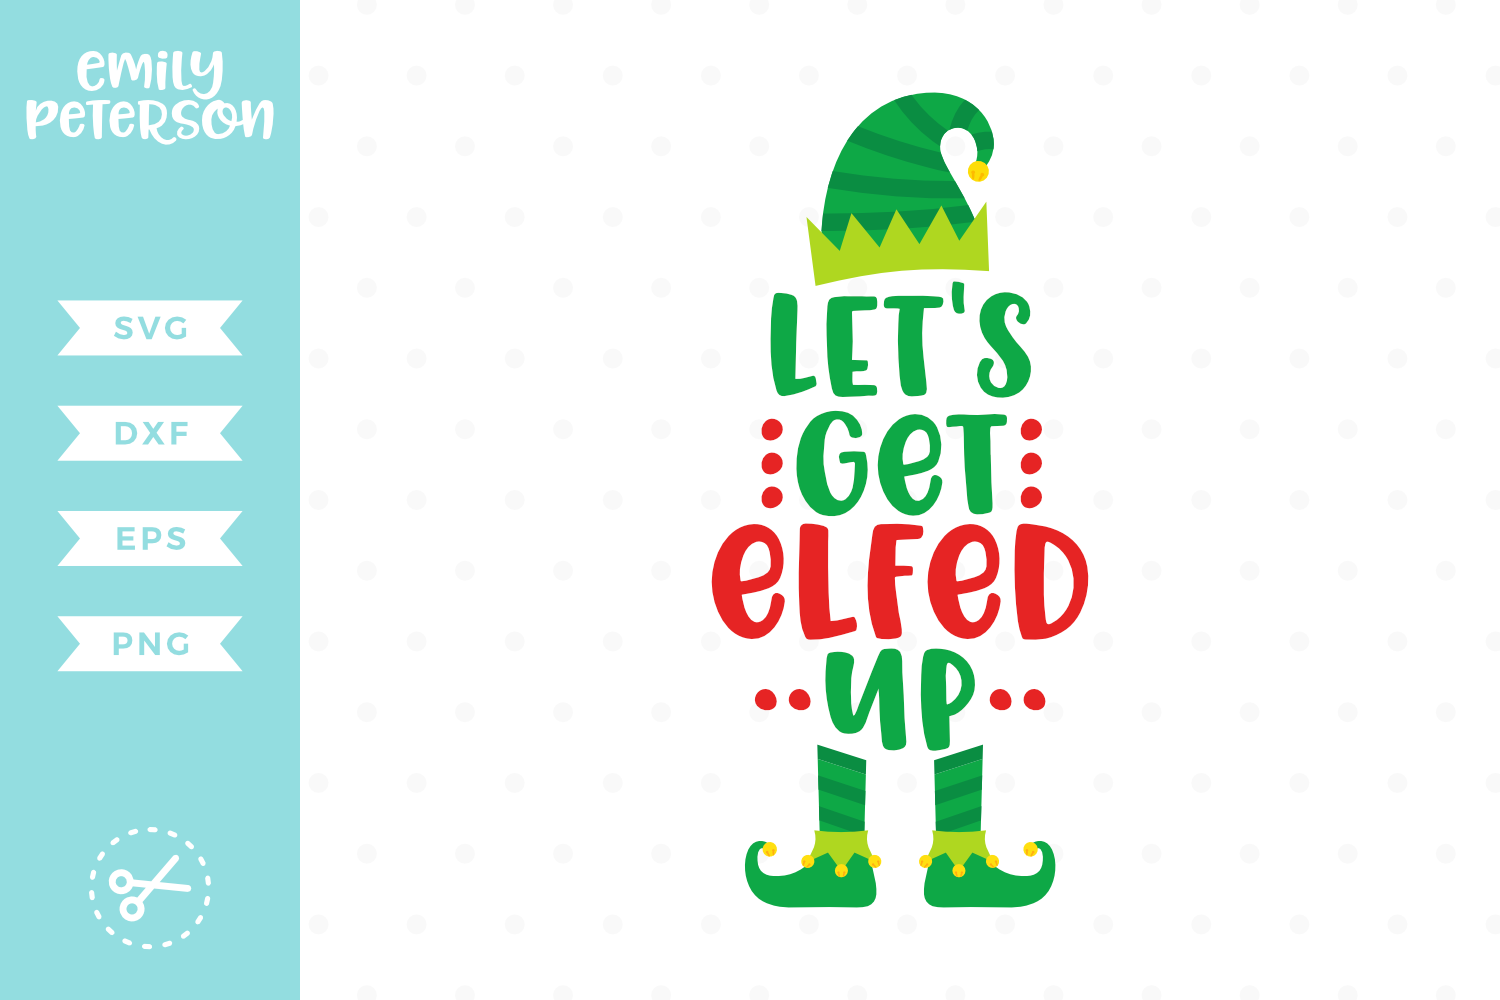 Let's Get Elfed Up SVG DXF EPS PNG.